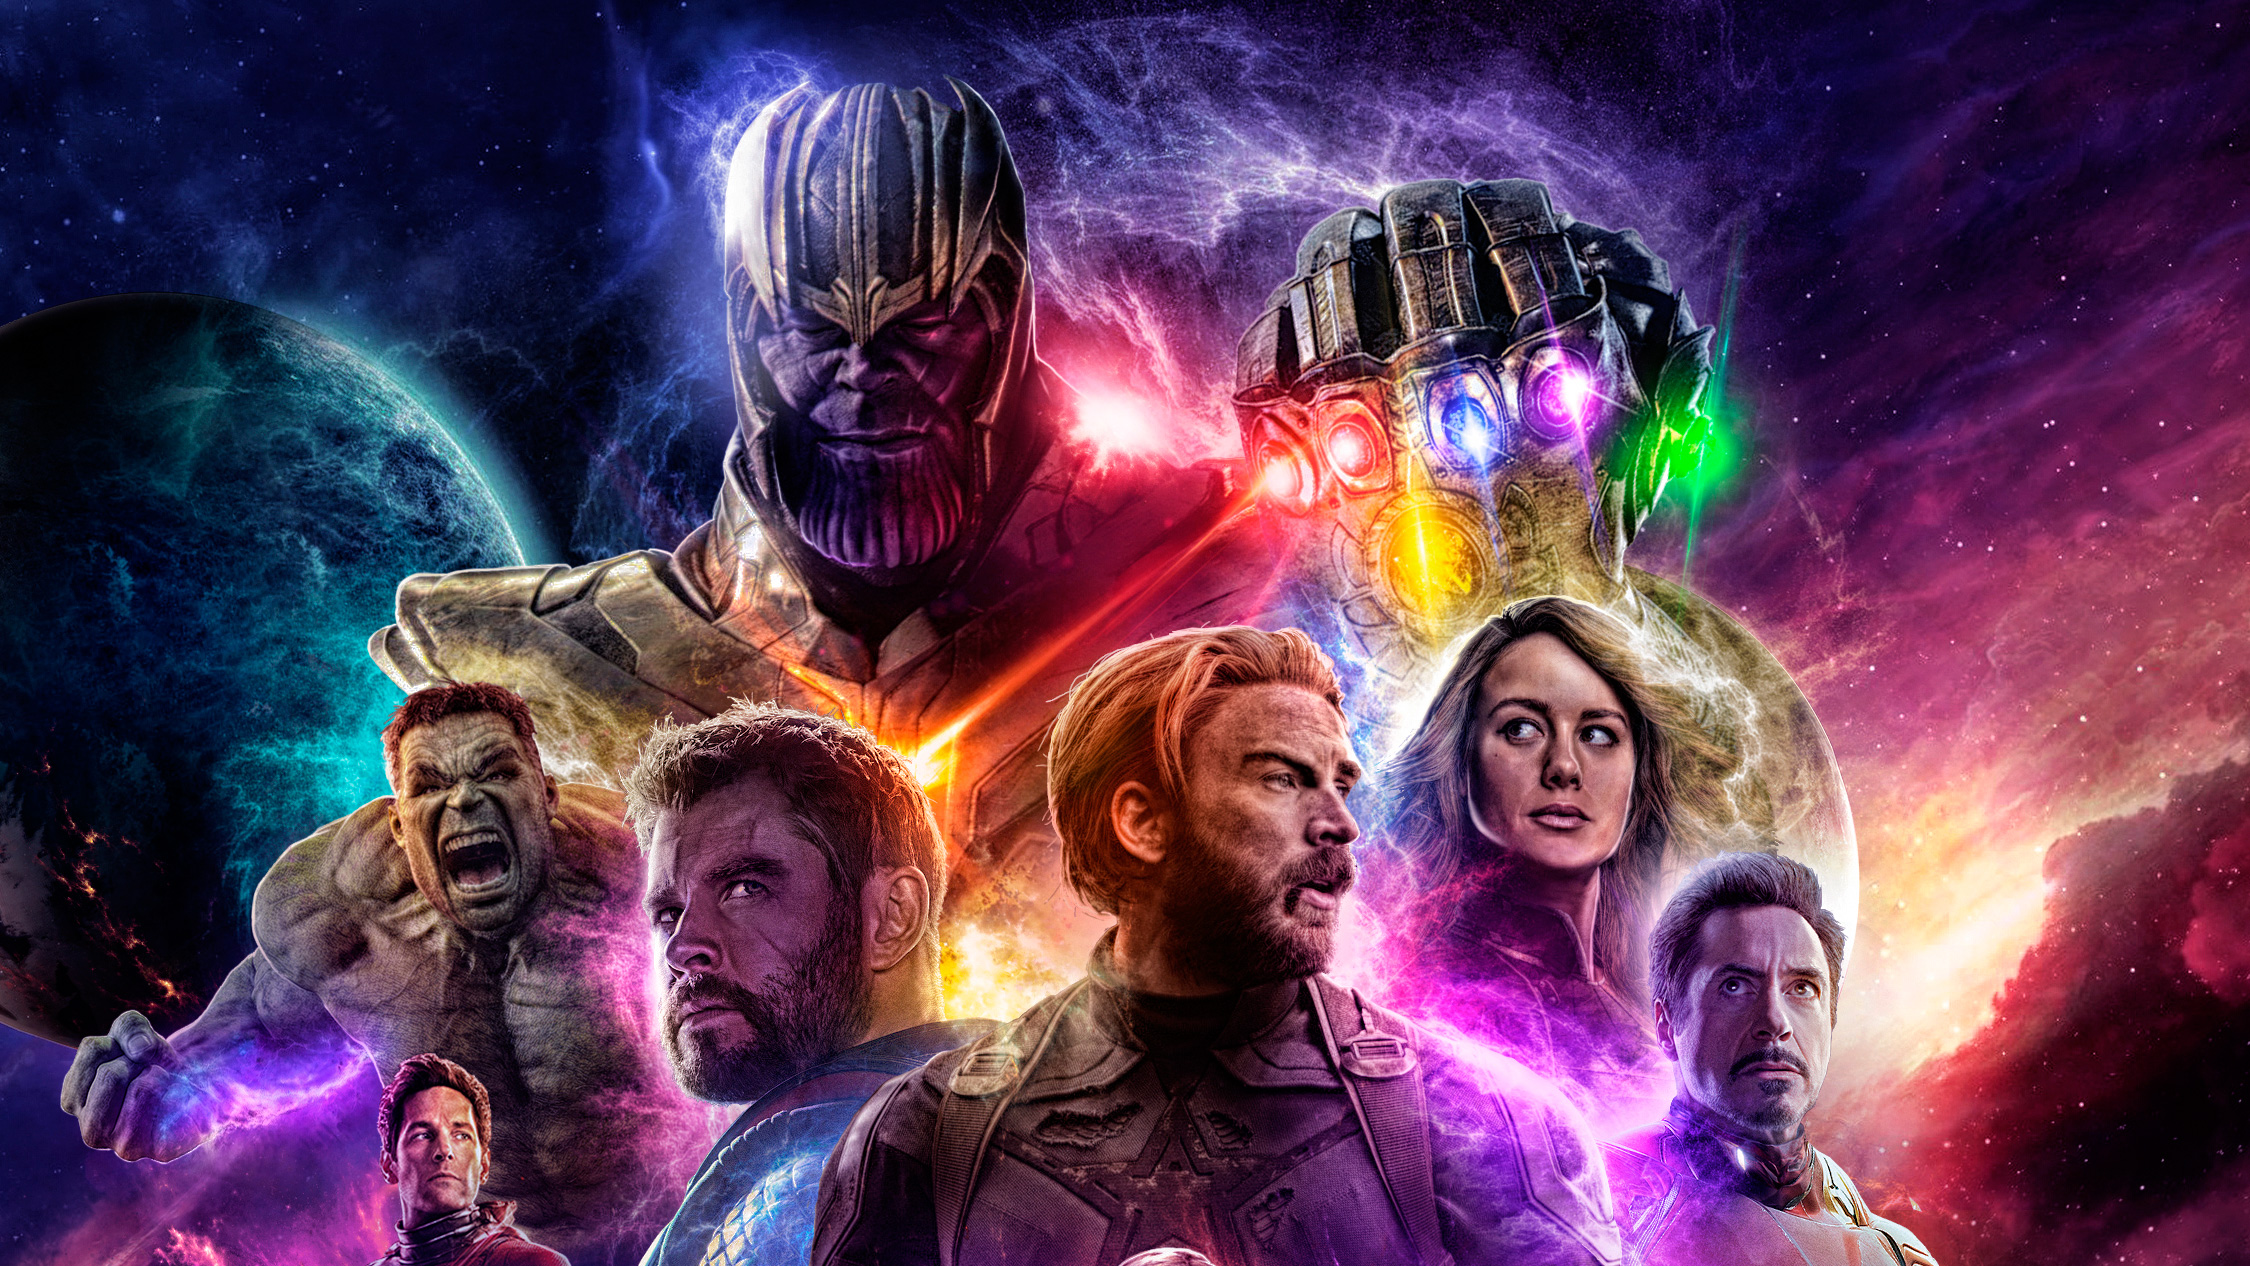 Avengers Endgame Poster Wallpaper Hot Flix Movies 2250x1266